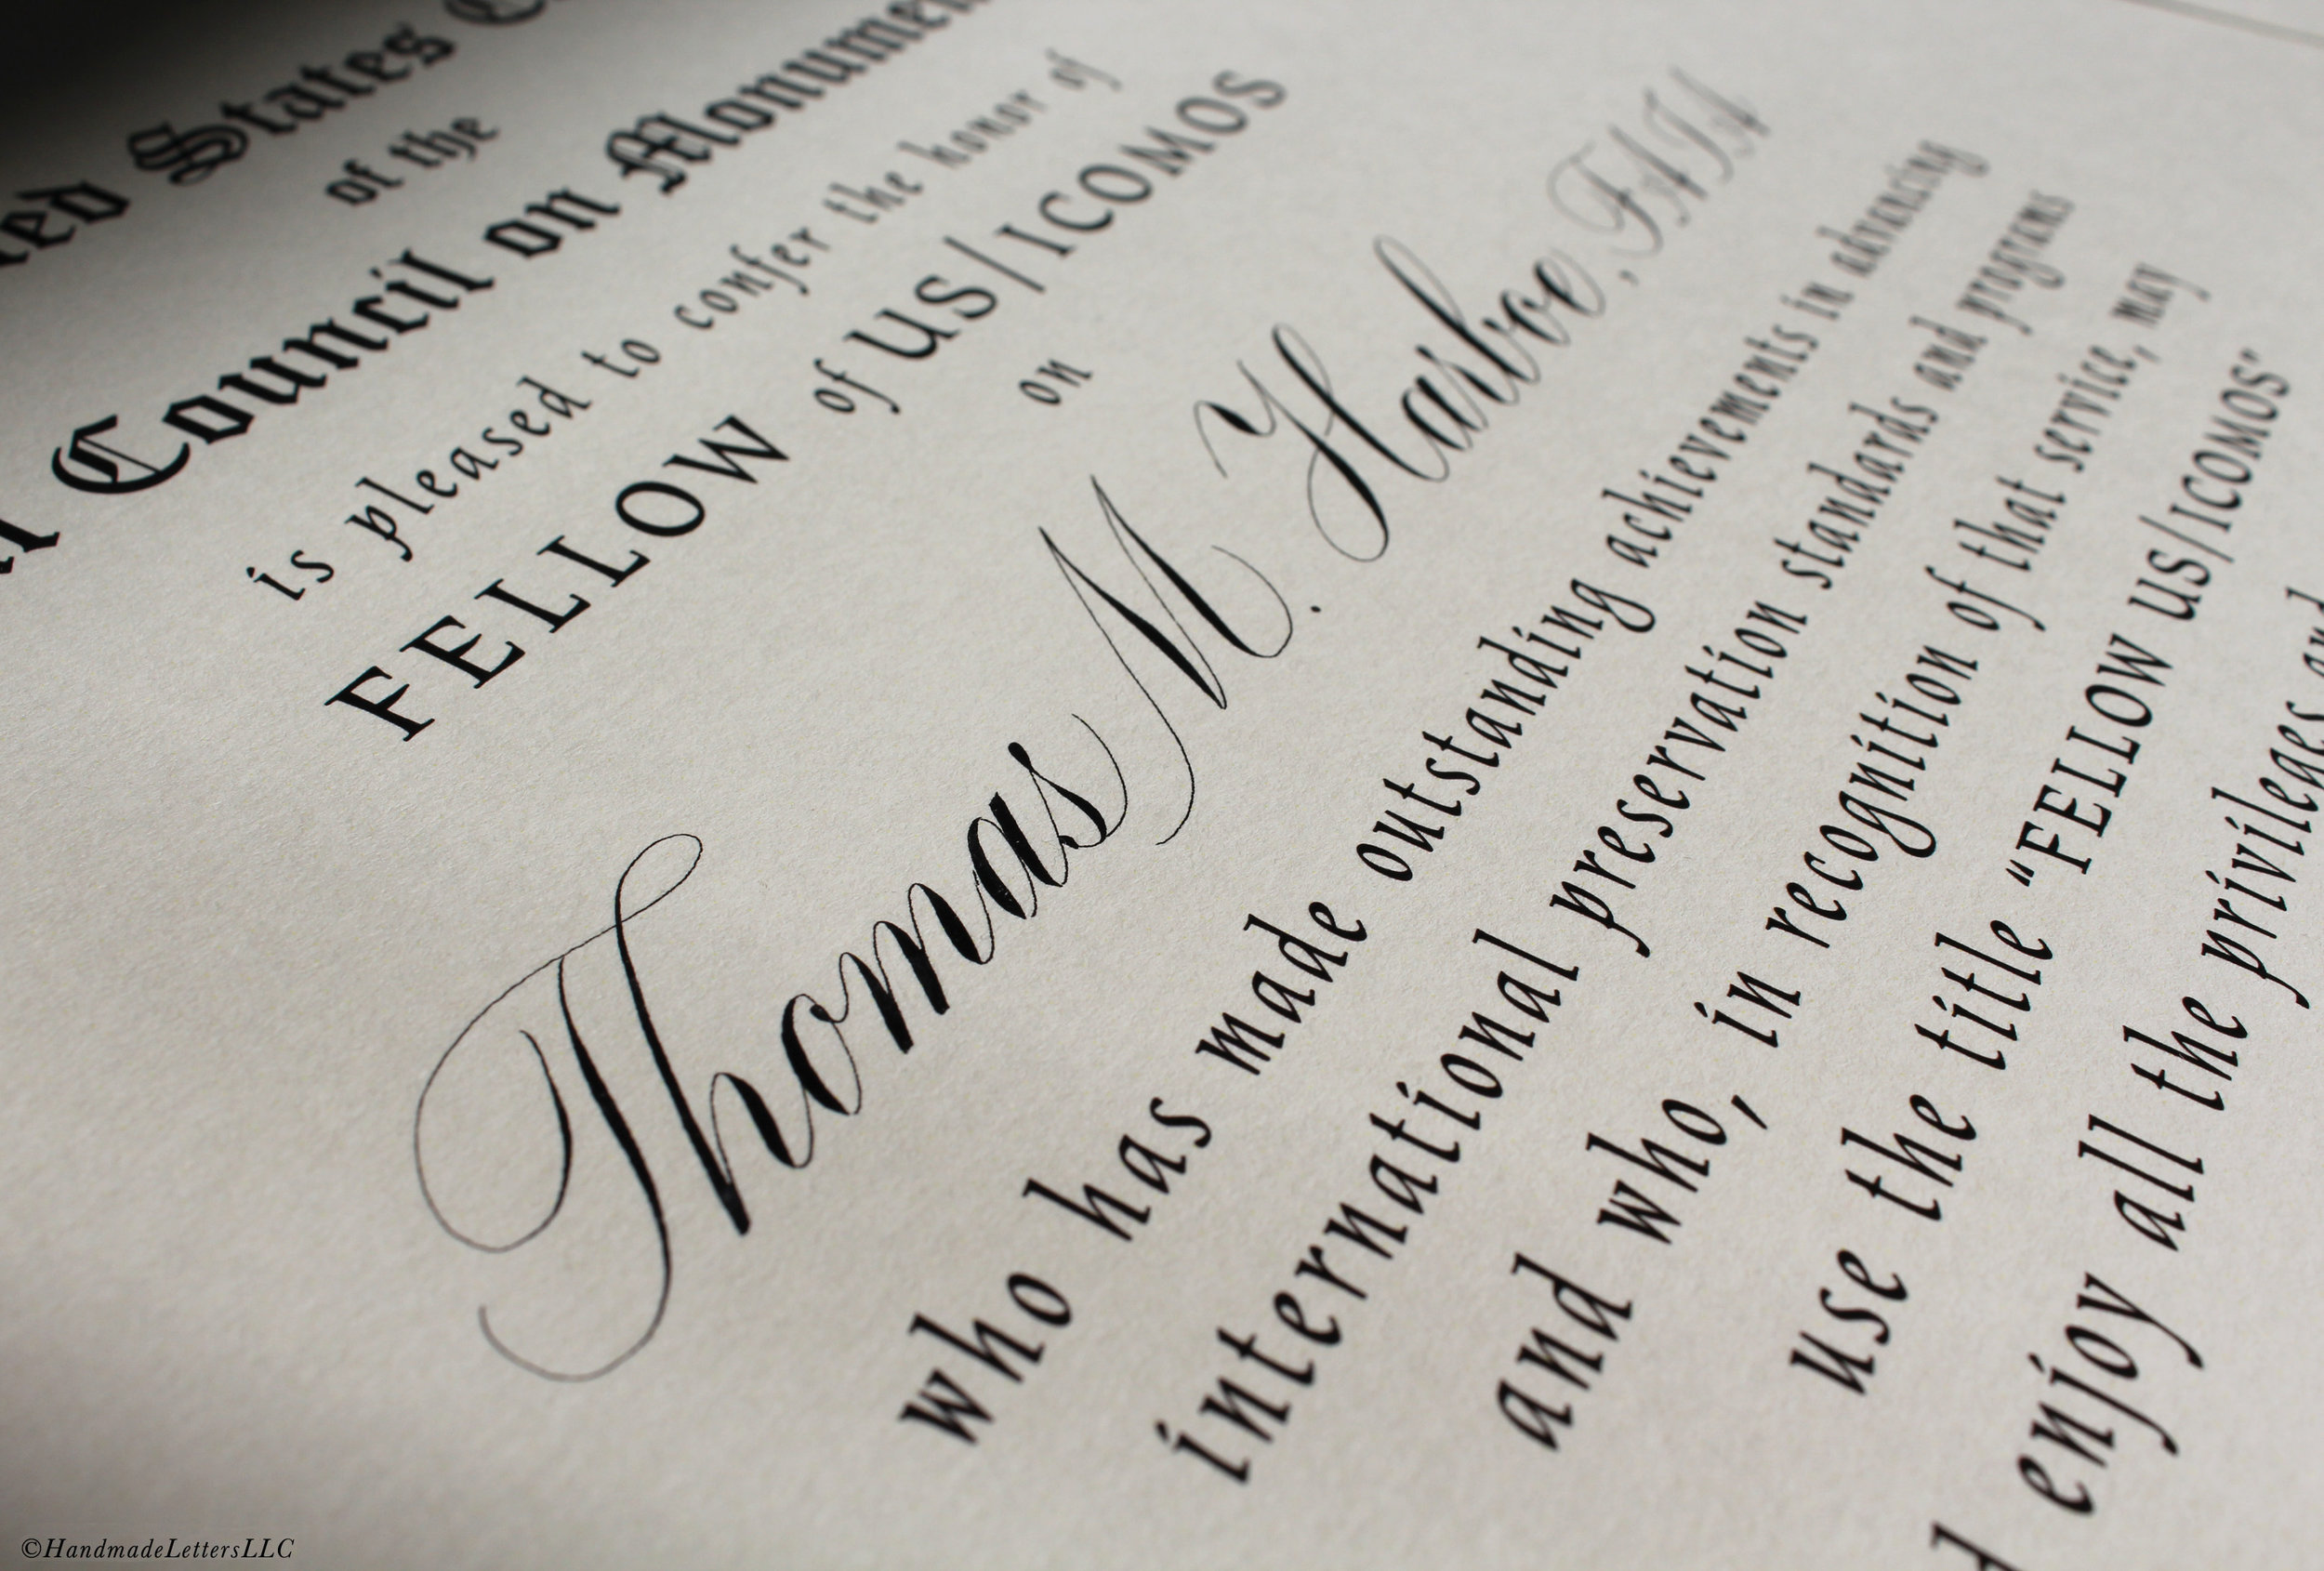 Handmade Letters - Certificate Calligraphy